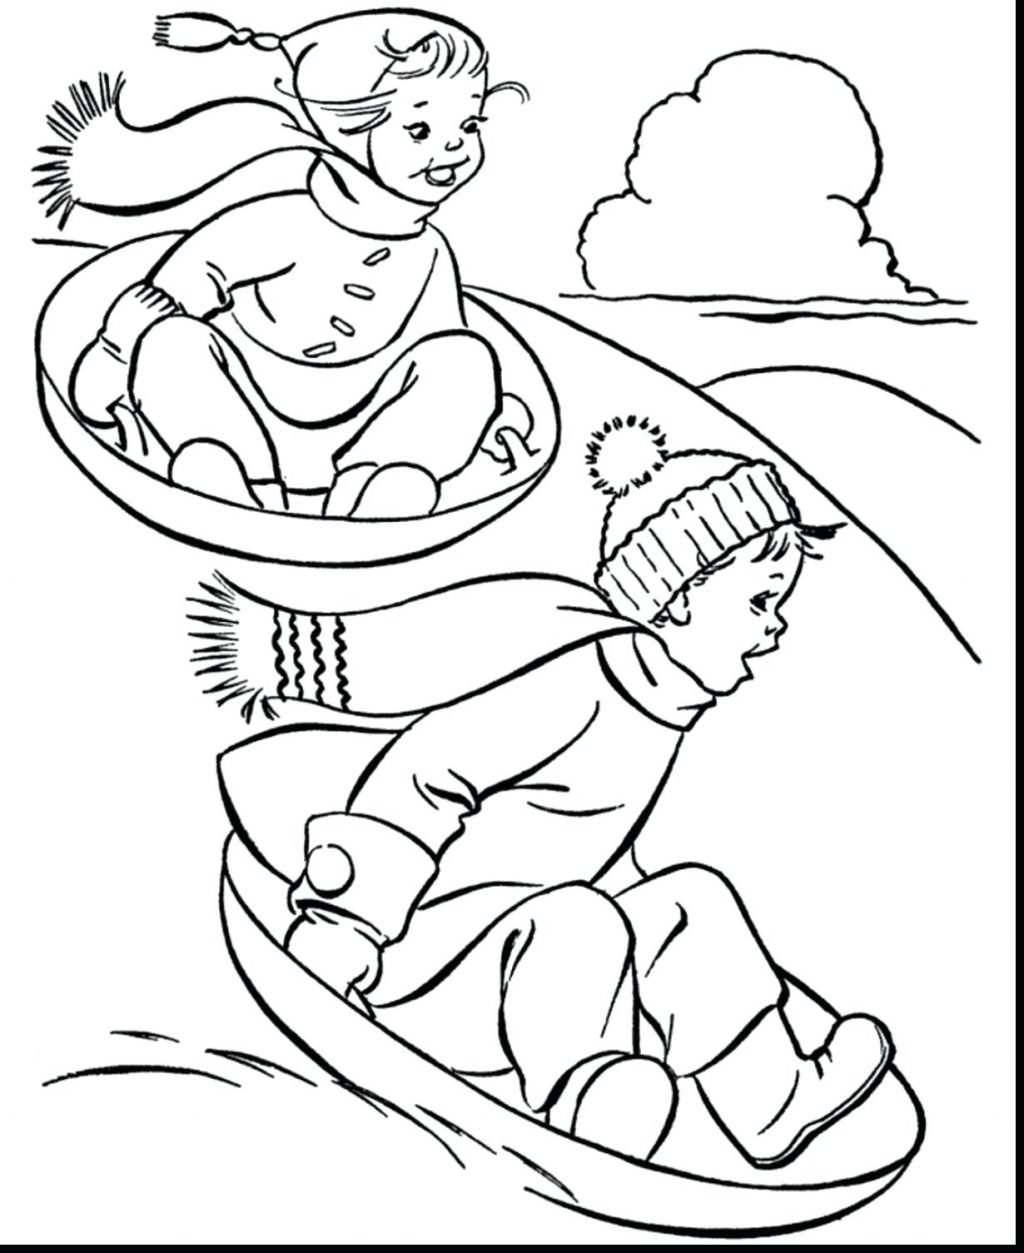 1024x1253 Full Winter Holiday Coloring Pages Free